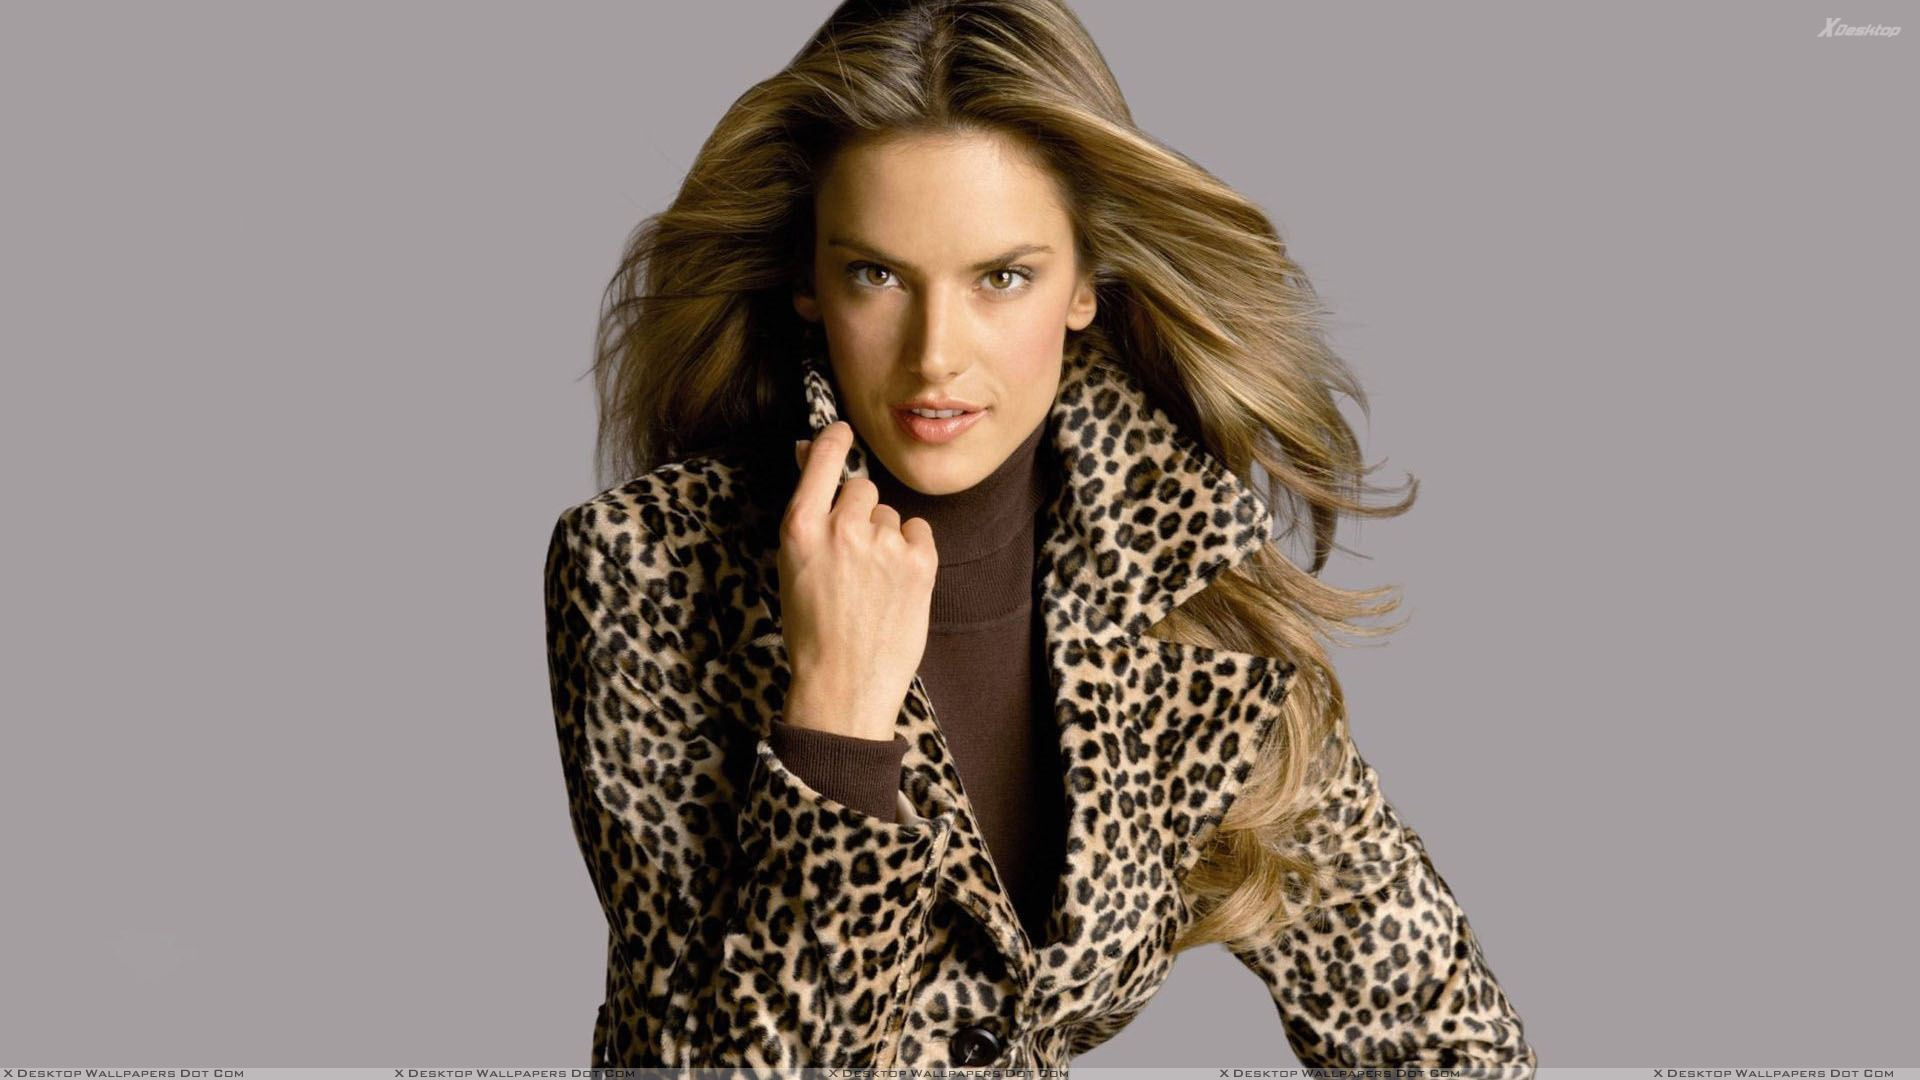 You Are Viewing Wallpaper Titled Alessandra Ambrosio